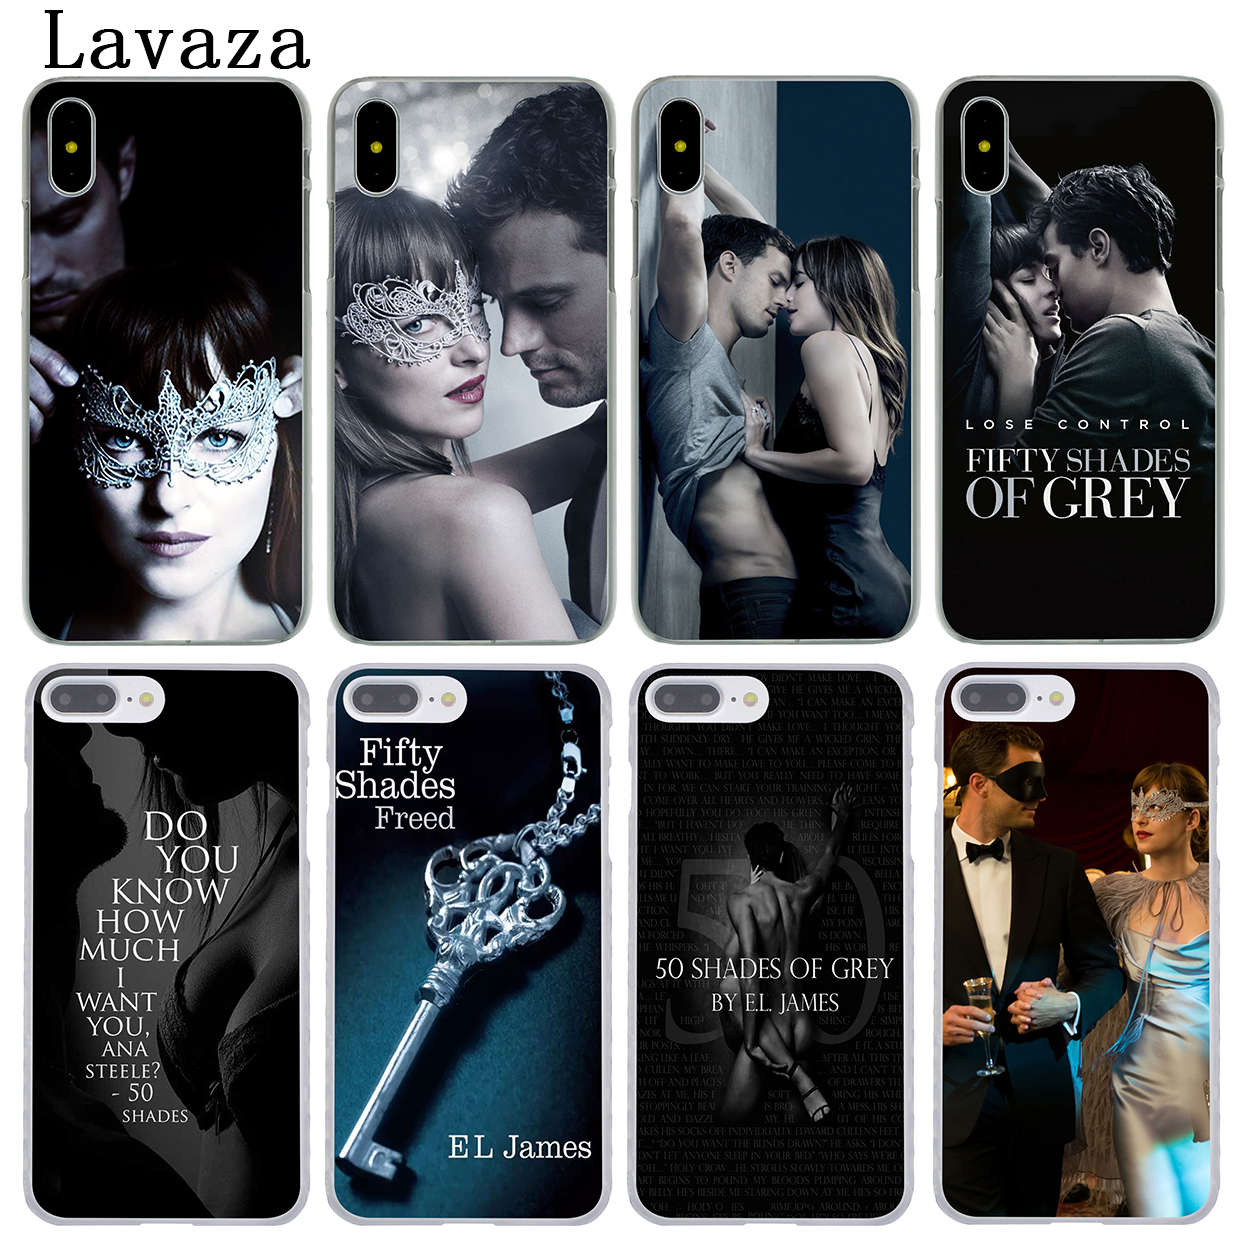 Lavaza Fifty Shades Darker of grey freed Hard Phone Coque Shell Case for Apple iPhone X 10 8 7 6 6S Plus 5 5S SE 5C 4 4S Cover